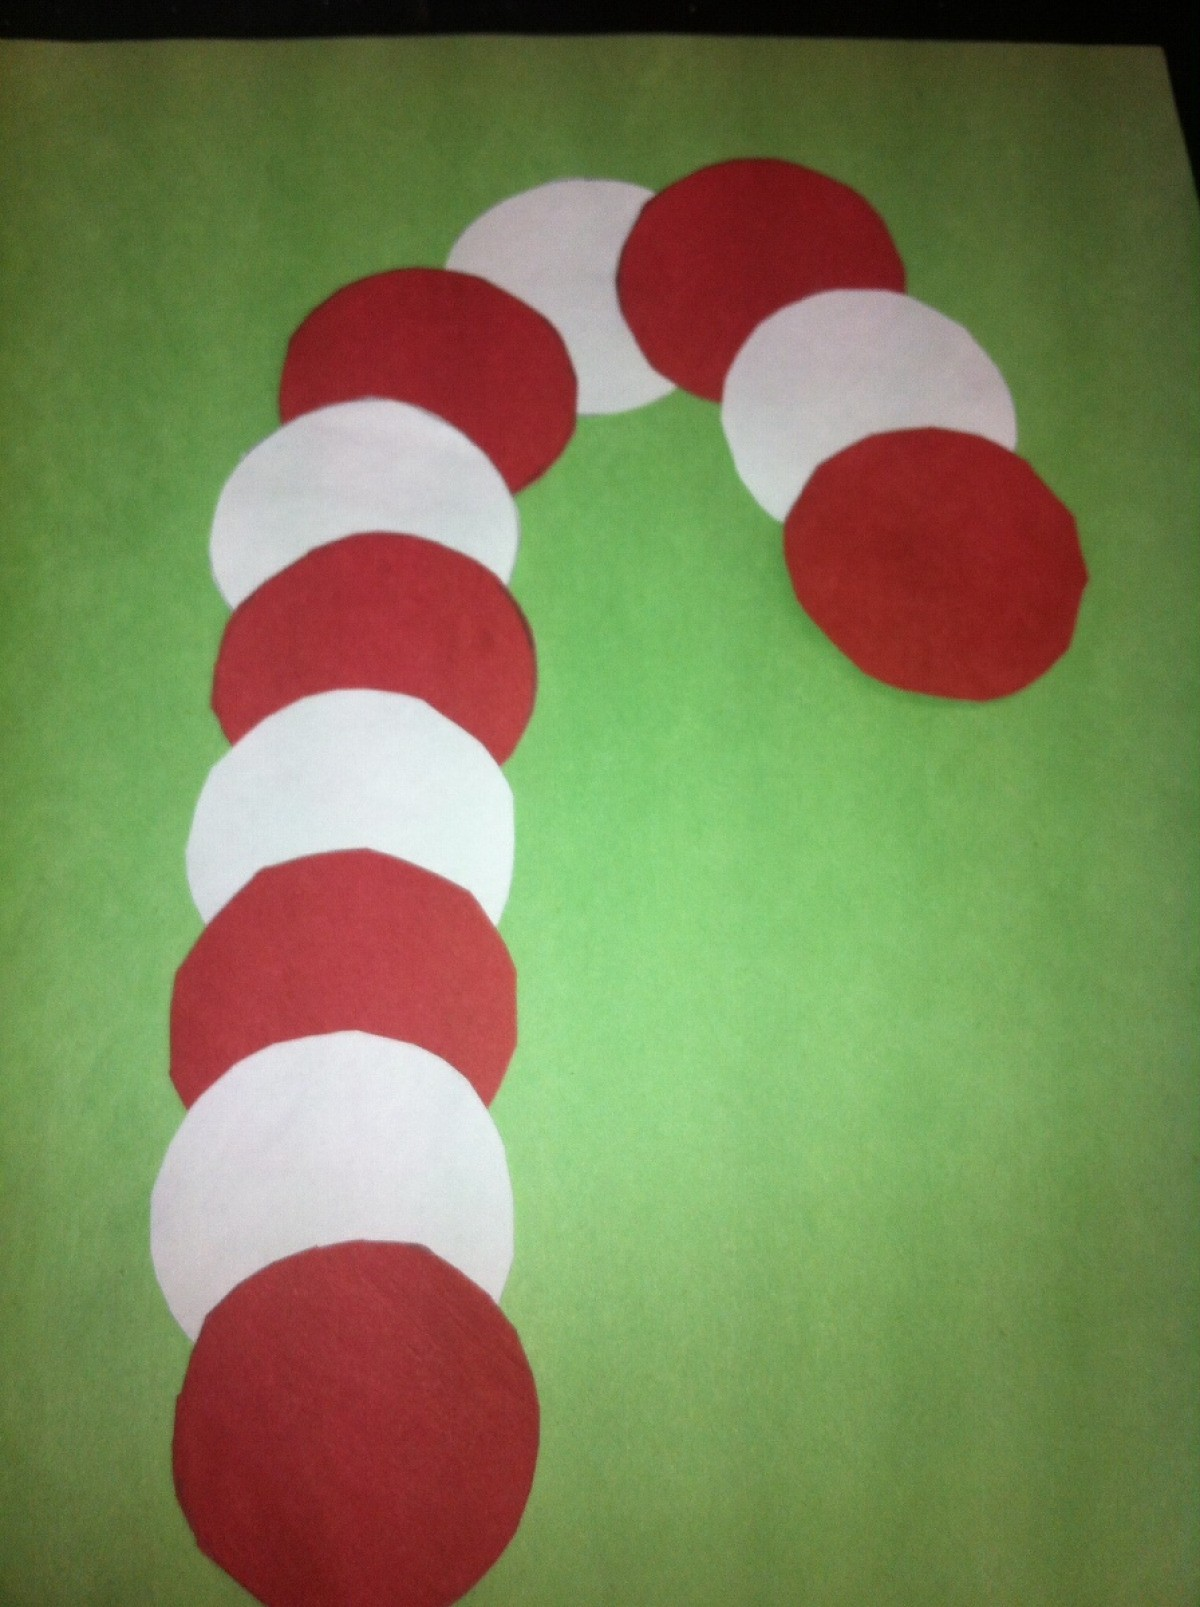 Candy Cane Shaped Crafts For Kids